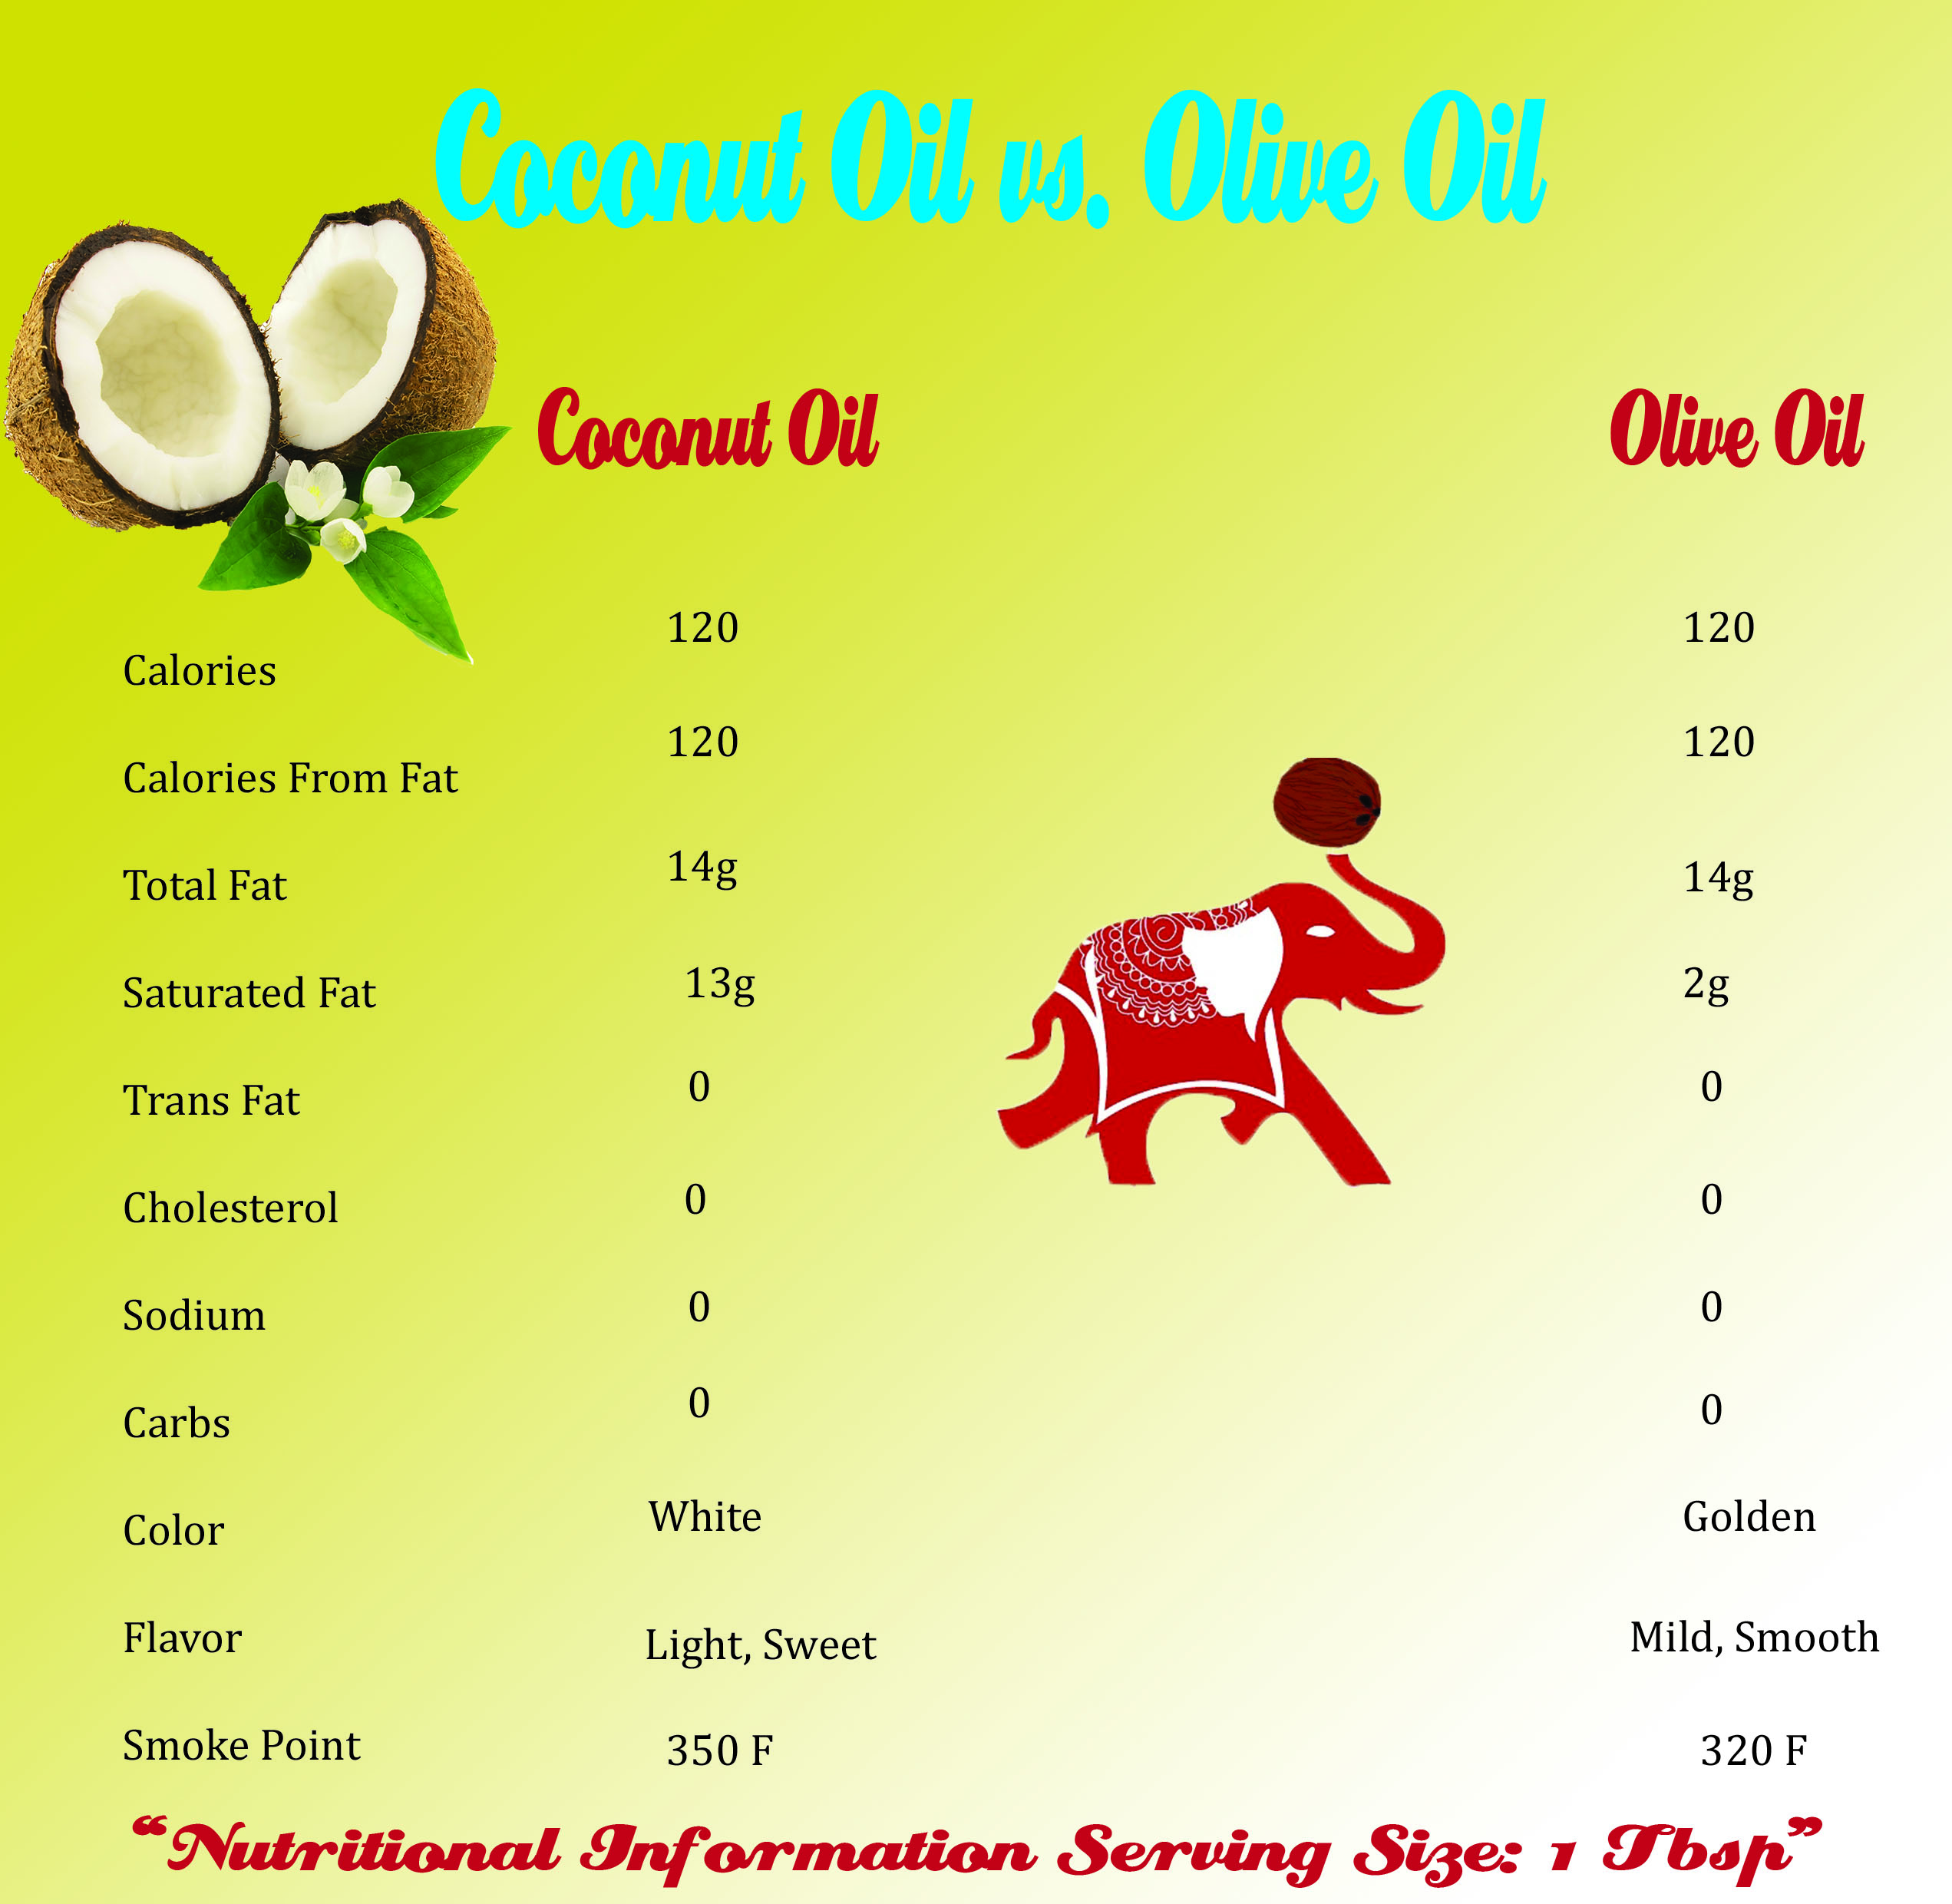 Fat Content Of Olives